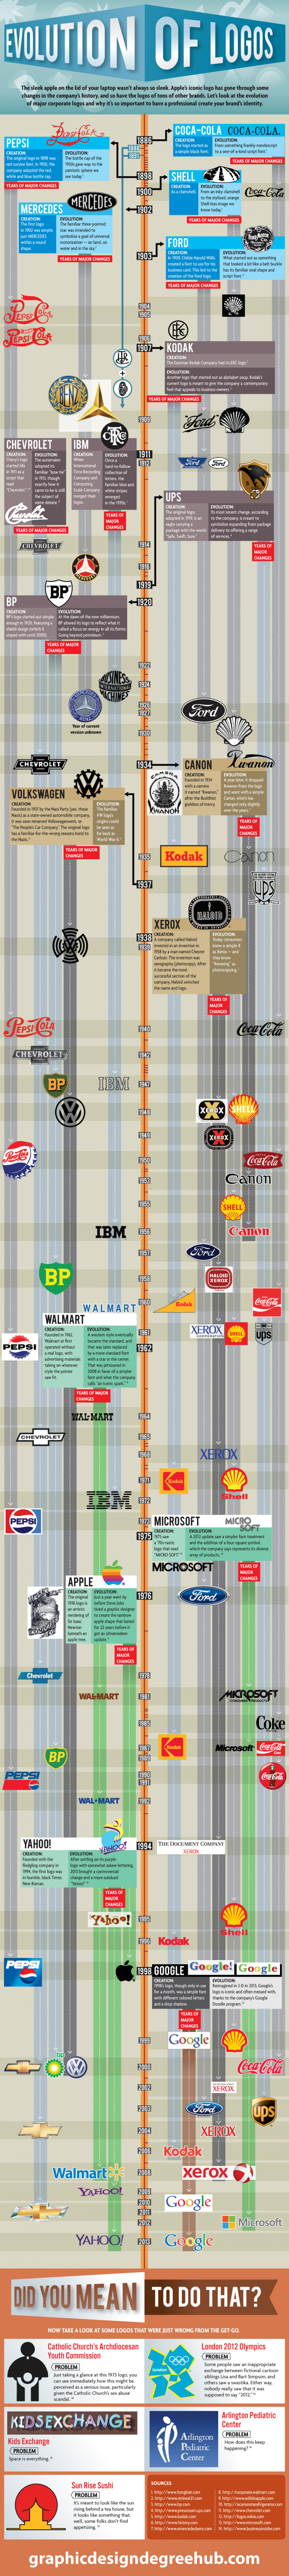 Evolution of Logos Infographic